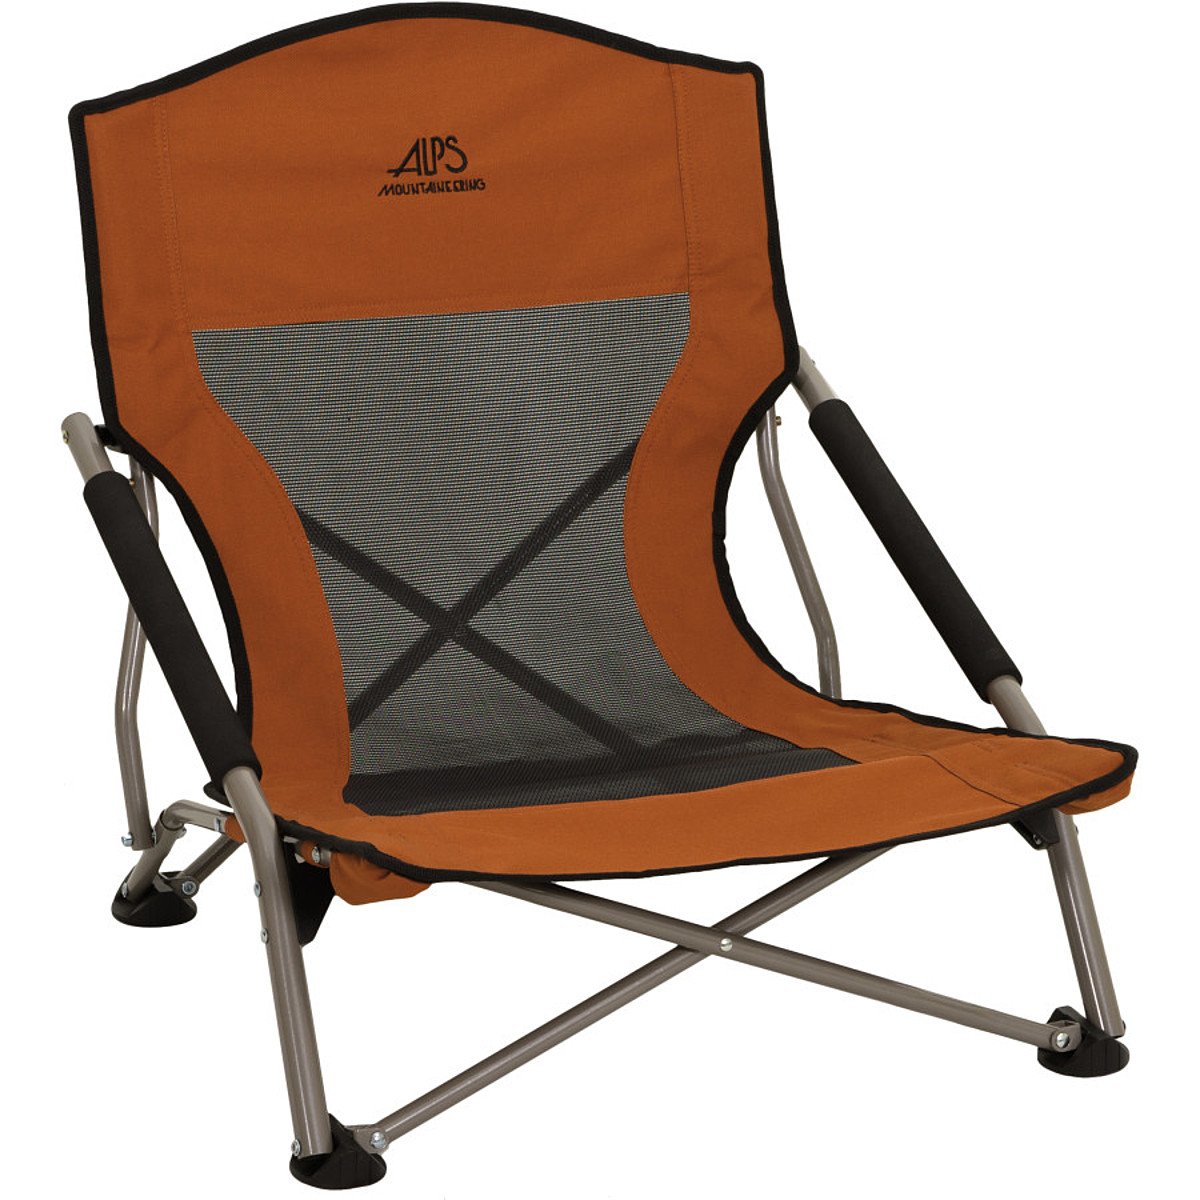 Alps Mountaineering Chair Alps Mountaineering Rendezvous Folding Camp Chair 8013905